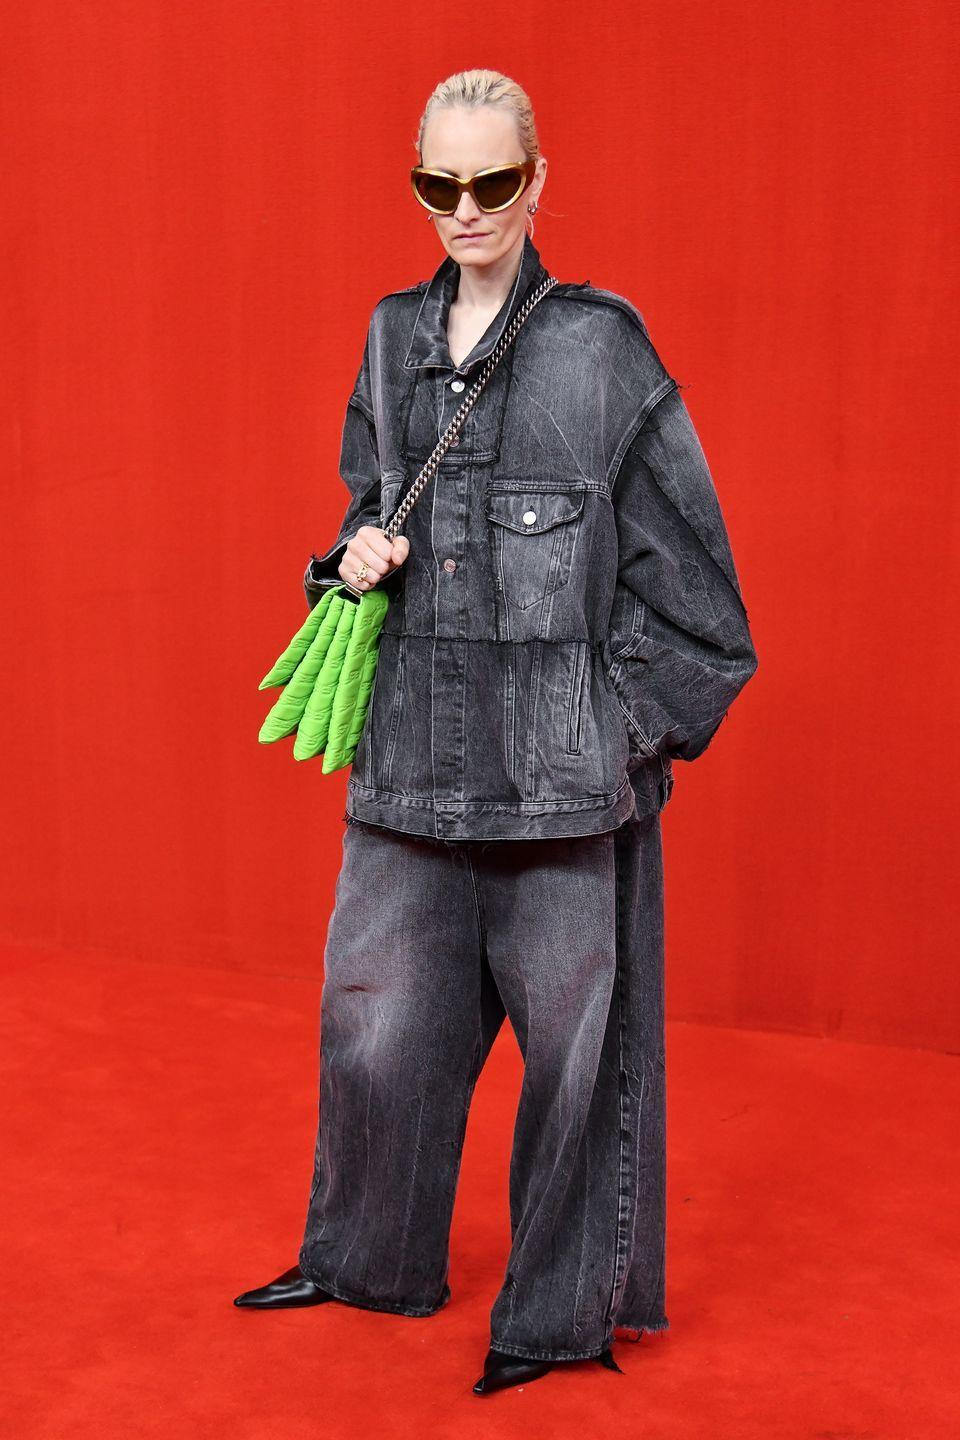 <p>Even as things return to normal, it seems that designers are struggling to figure out the next big move when it comes to fashion shows. Pre-pandemic, there was a definite feeling that the system needed to change. Well, it may just be that Demna Gvasalia has started to figure it all out. For the spring 2022 Balenciaga show, the designer had industry guests, models, and celebs walk the red carpet before entering a screening room to view everyone else arrive. This was followed by an original Balenciaga-themed Simpsons episode that had everyone in the room laughing. The audience essentially became the show.</p>